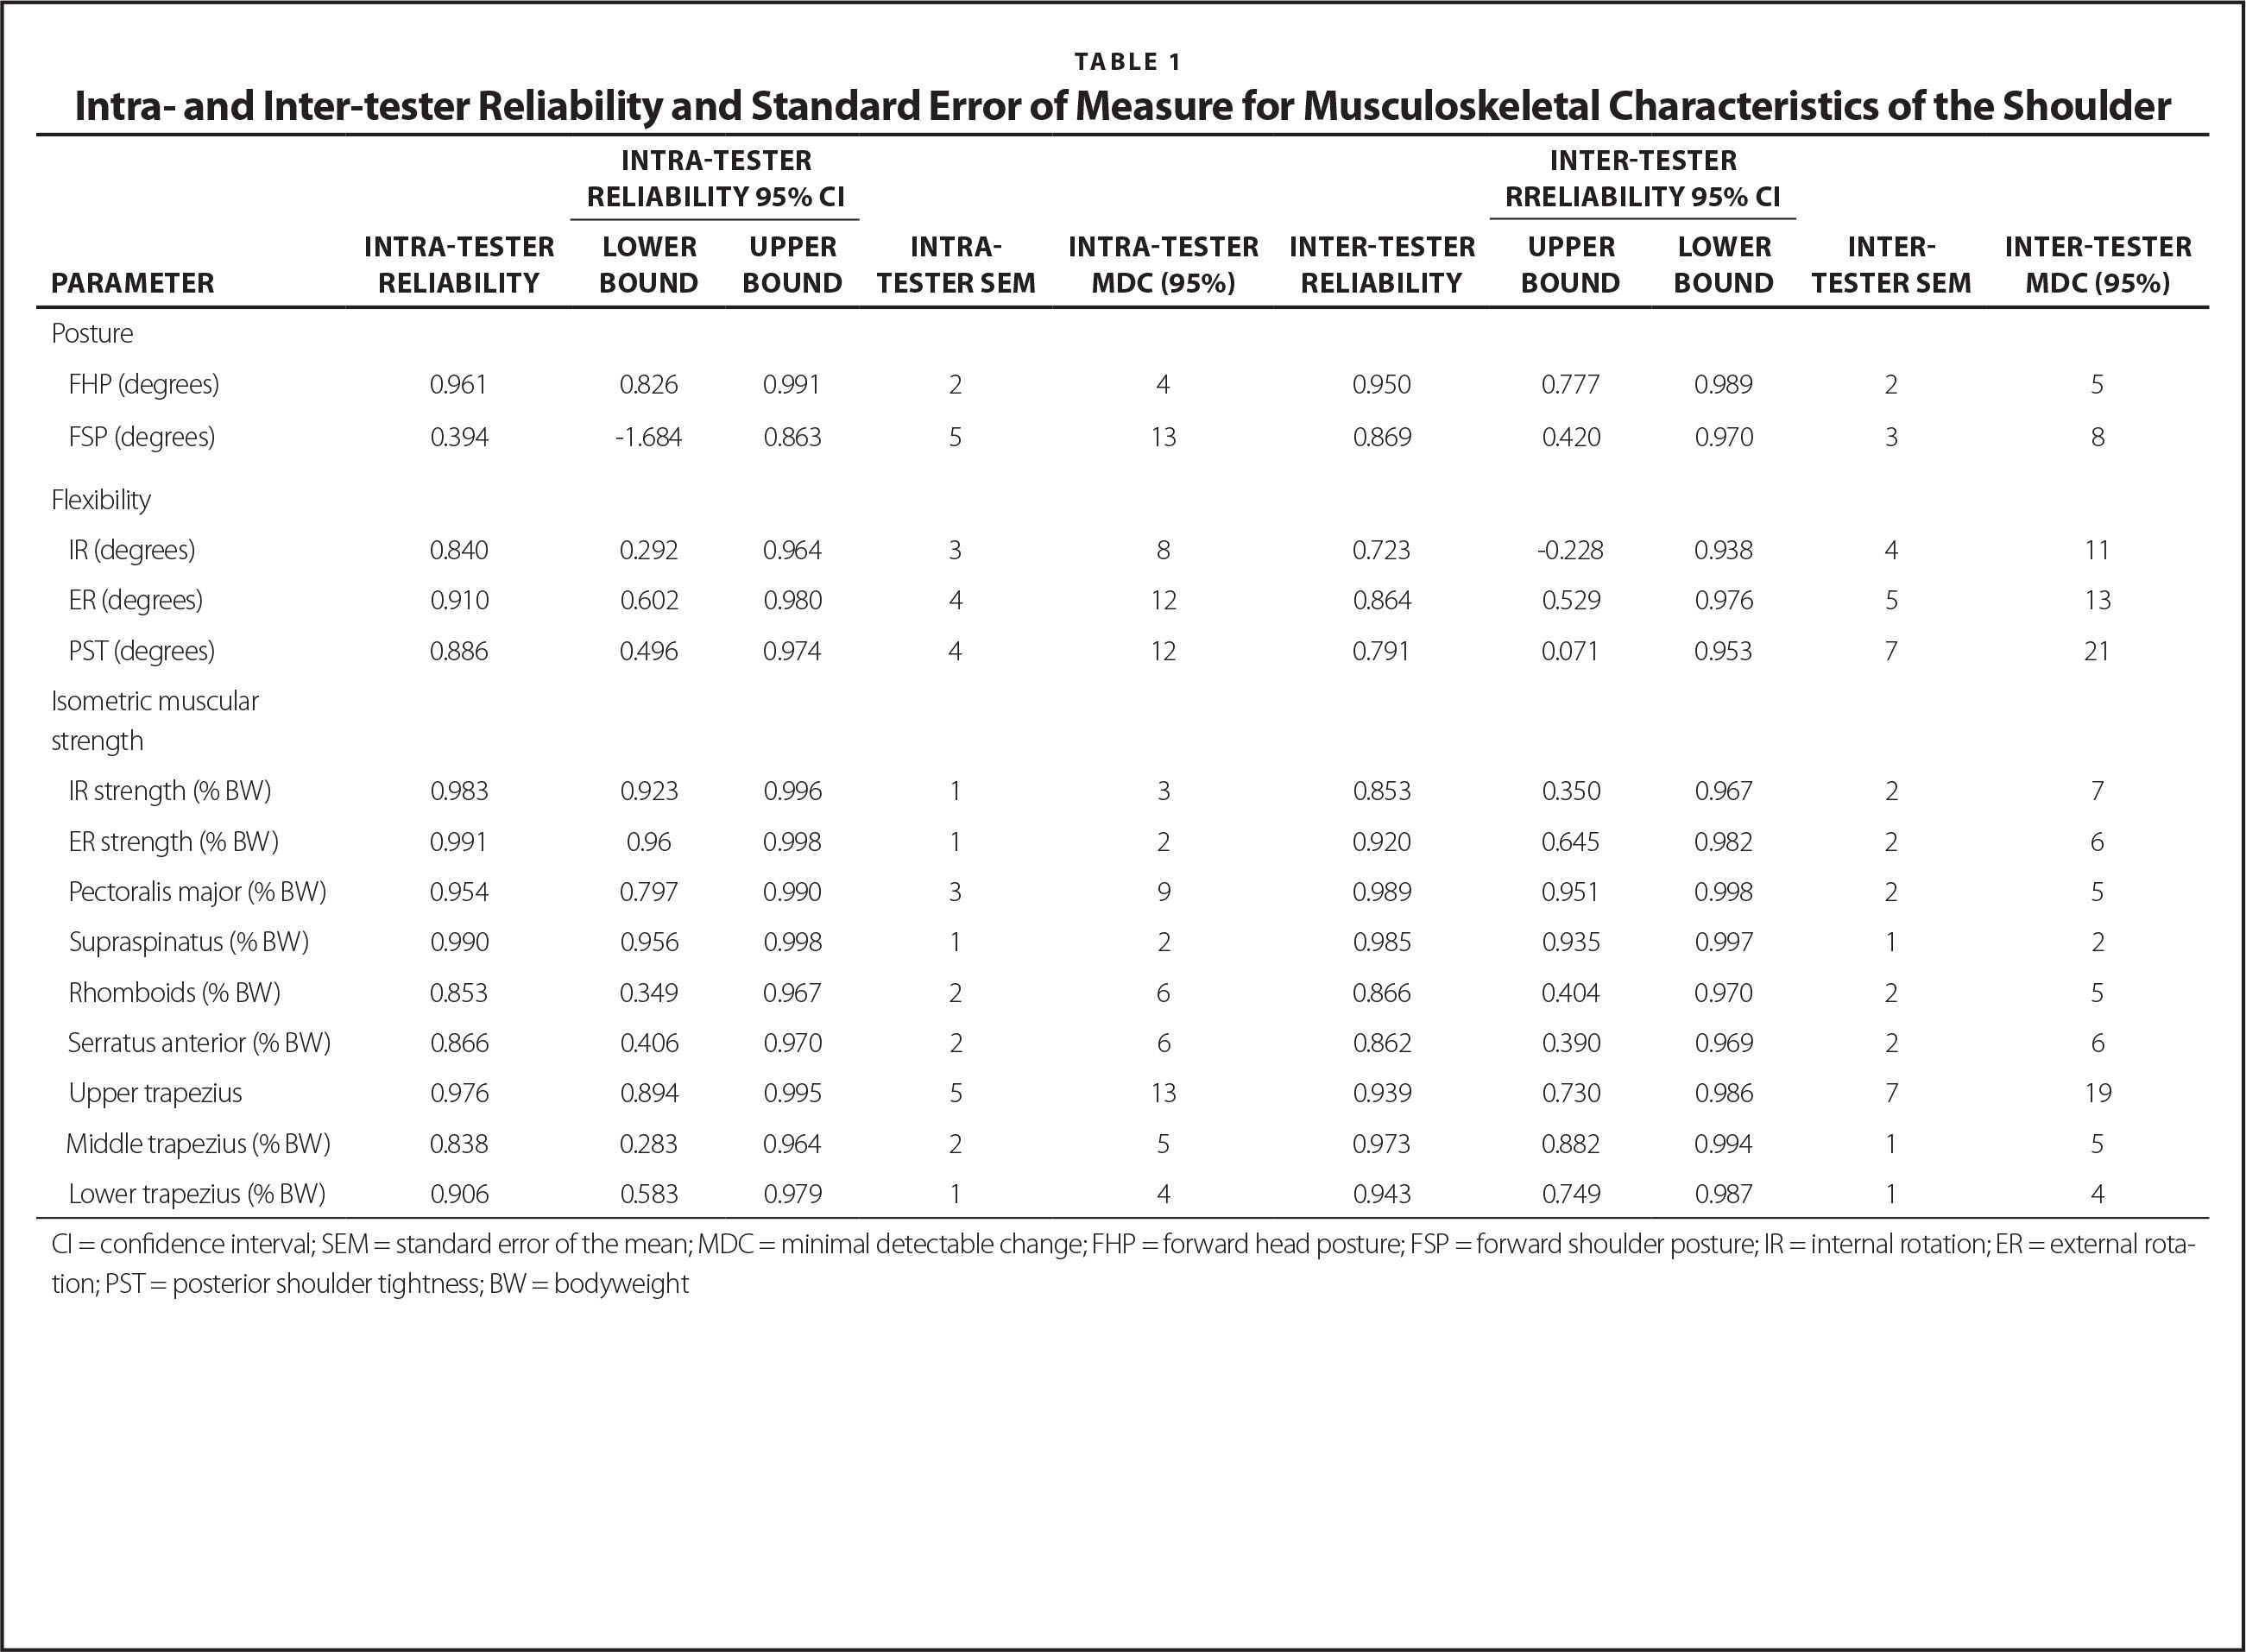 Intra- and Inter-tester Reliability and Standard Error of Measure for Musculoskeletal Characteristics of the Shoulder